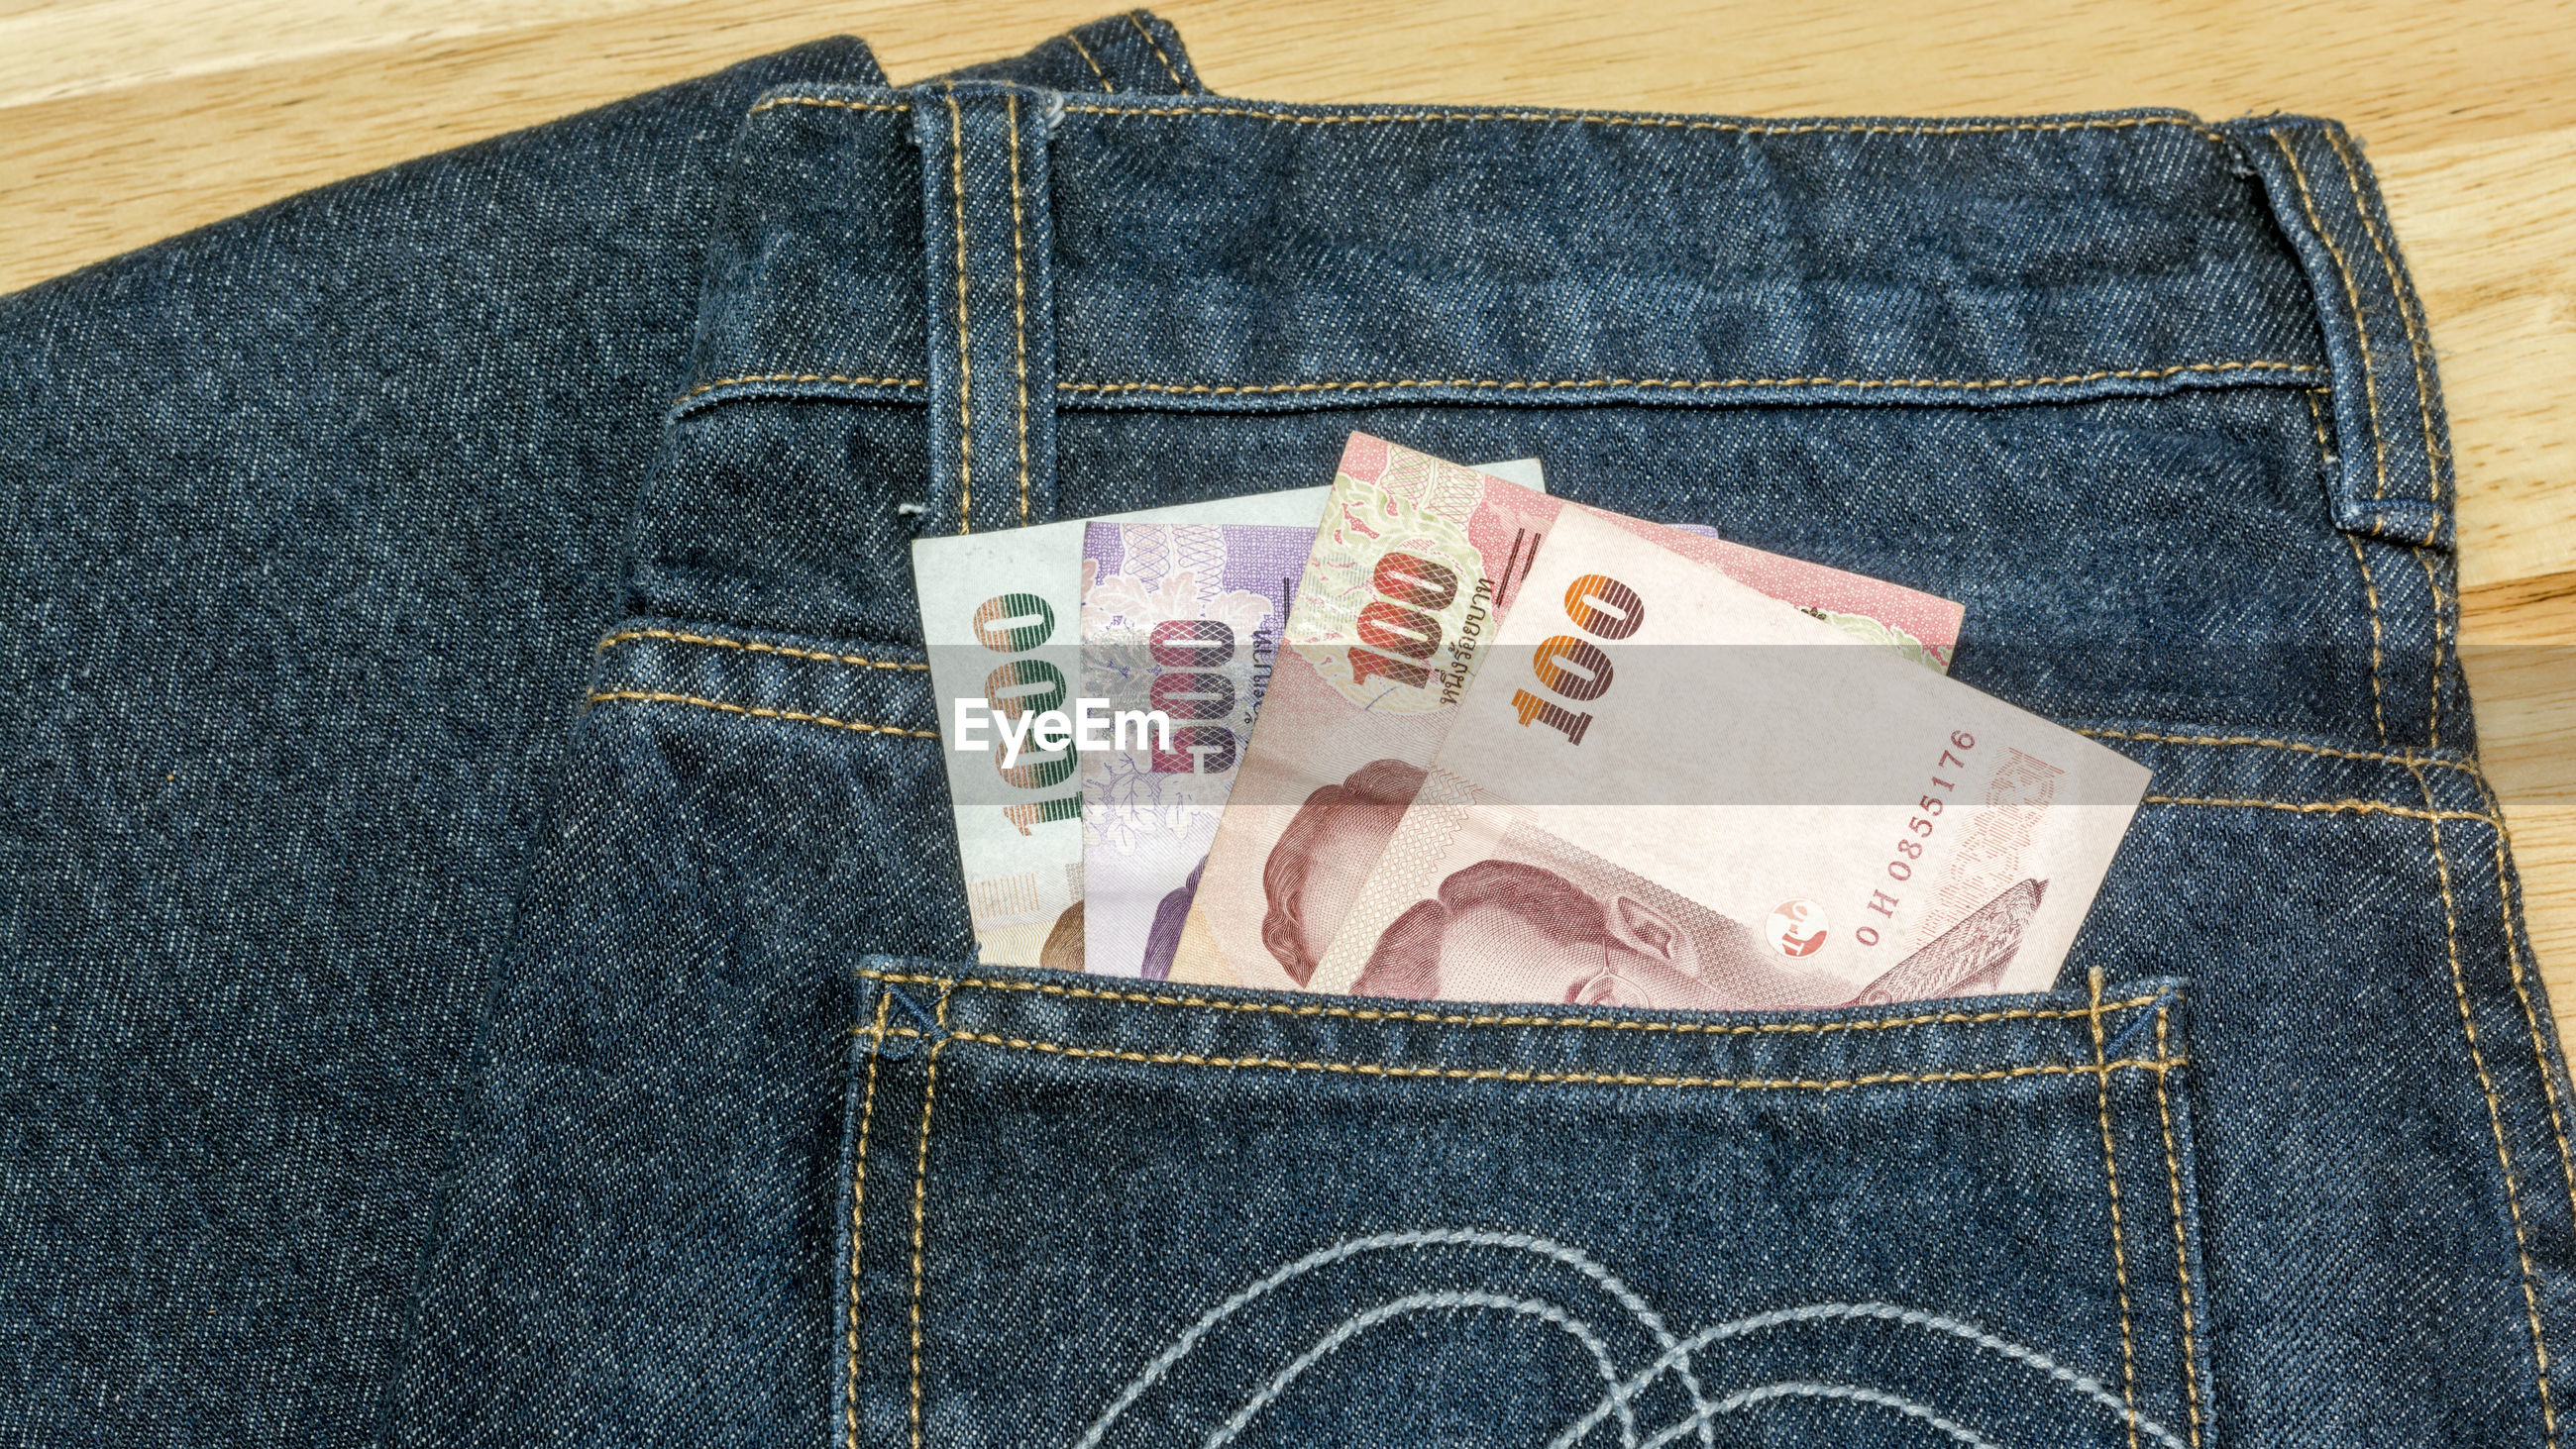 Close-up of paper currency in jeans pocket